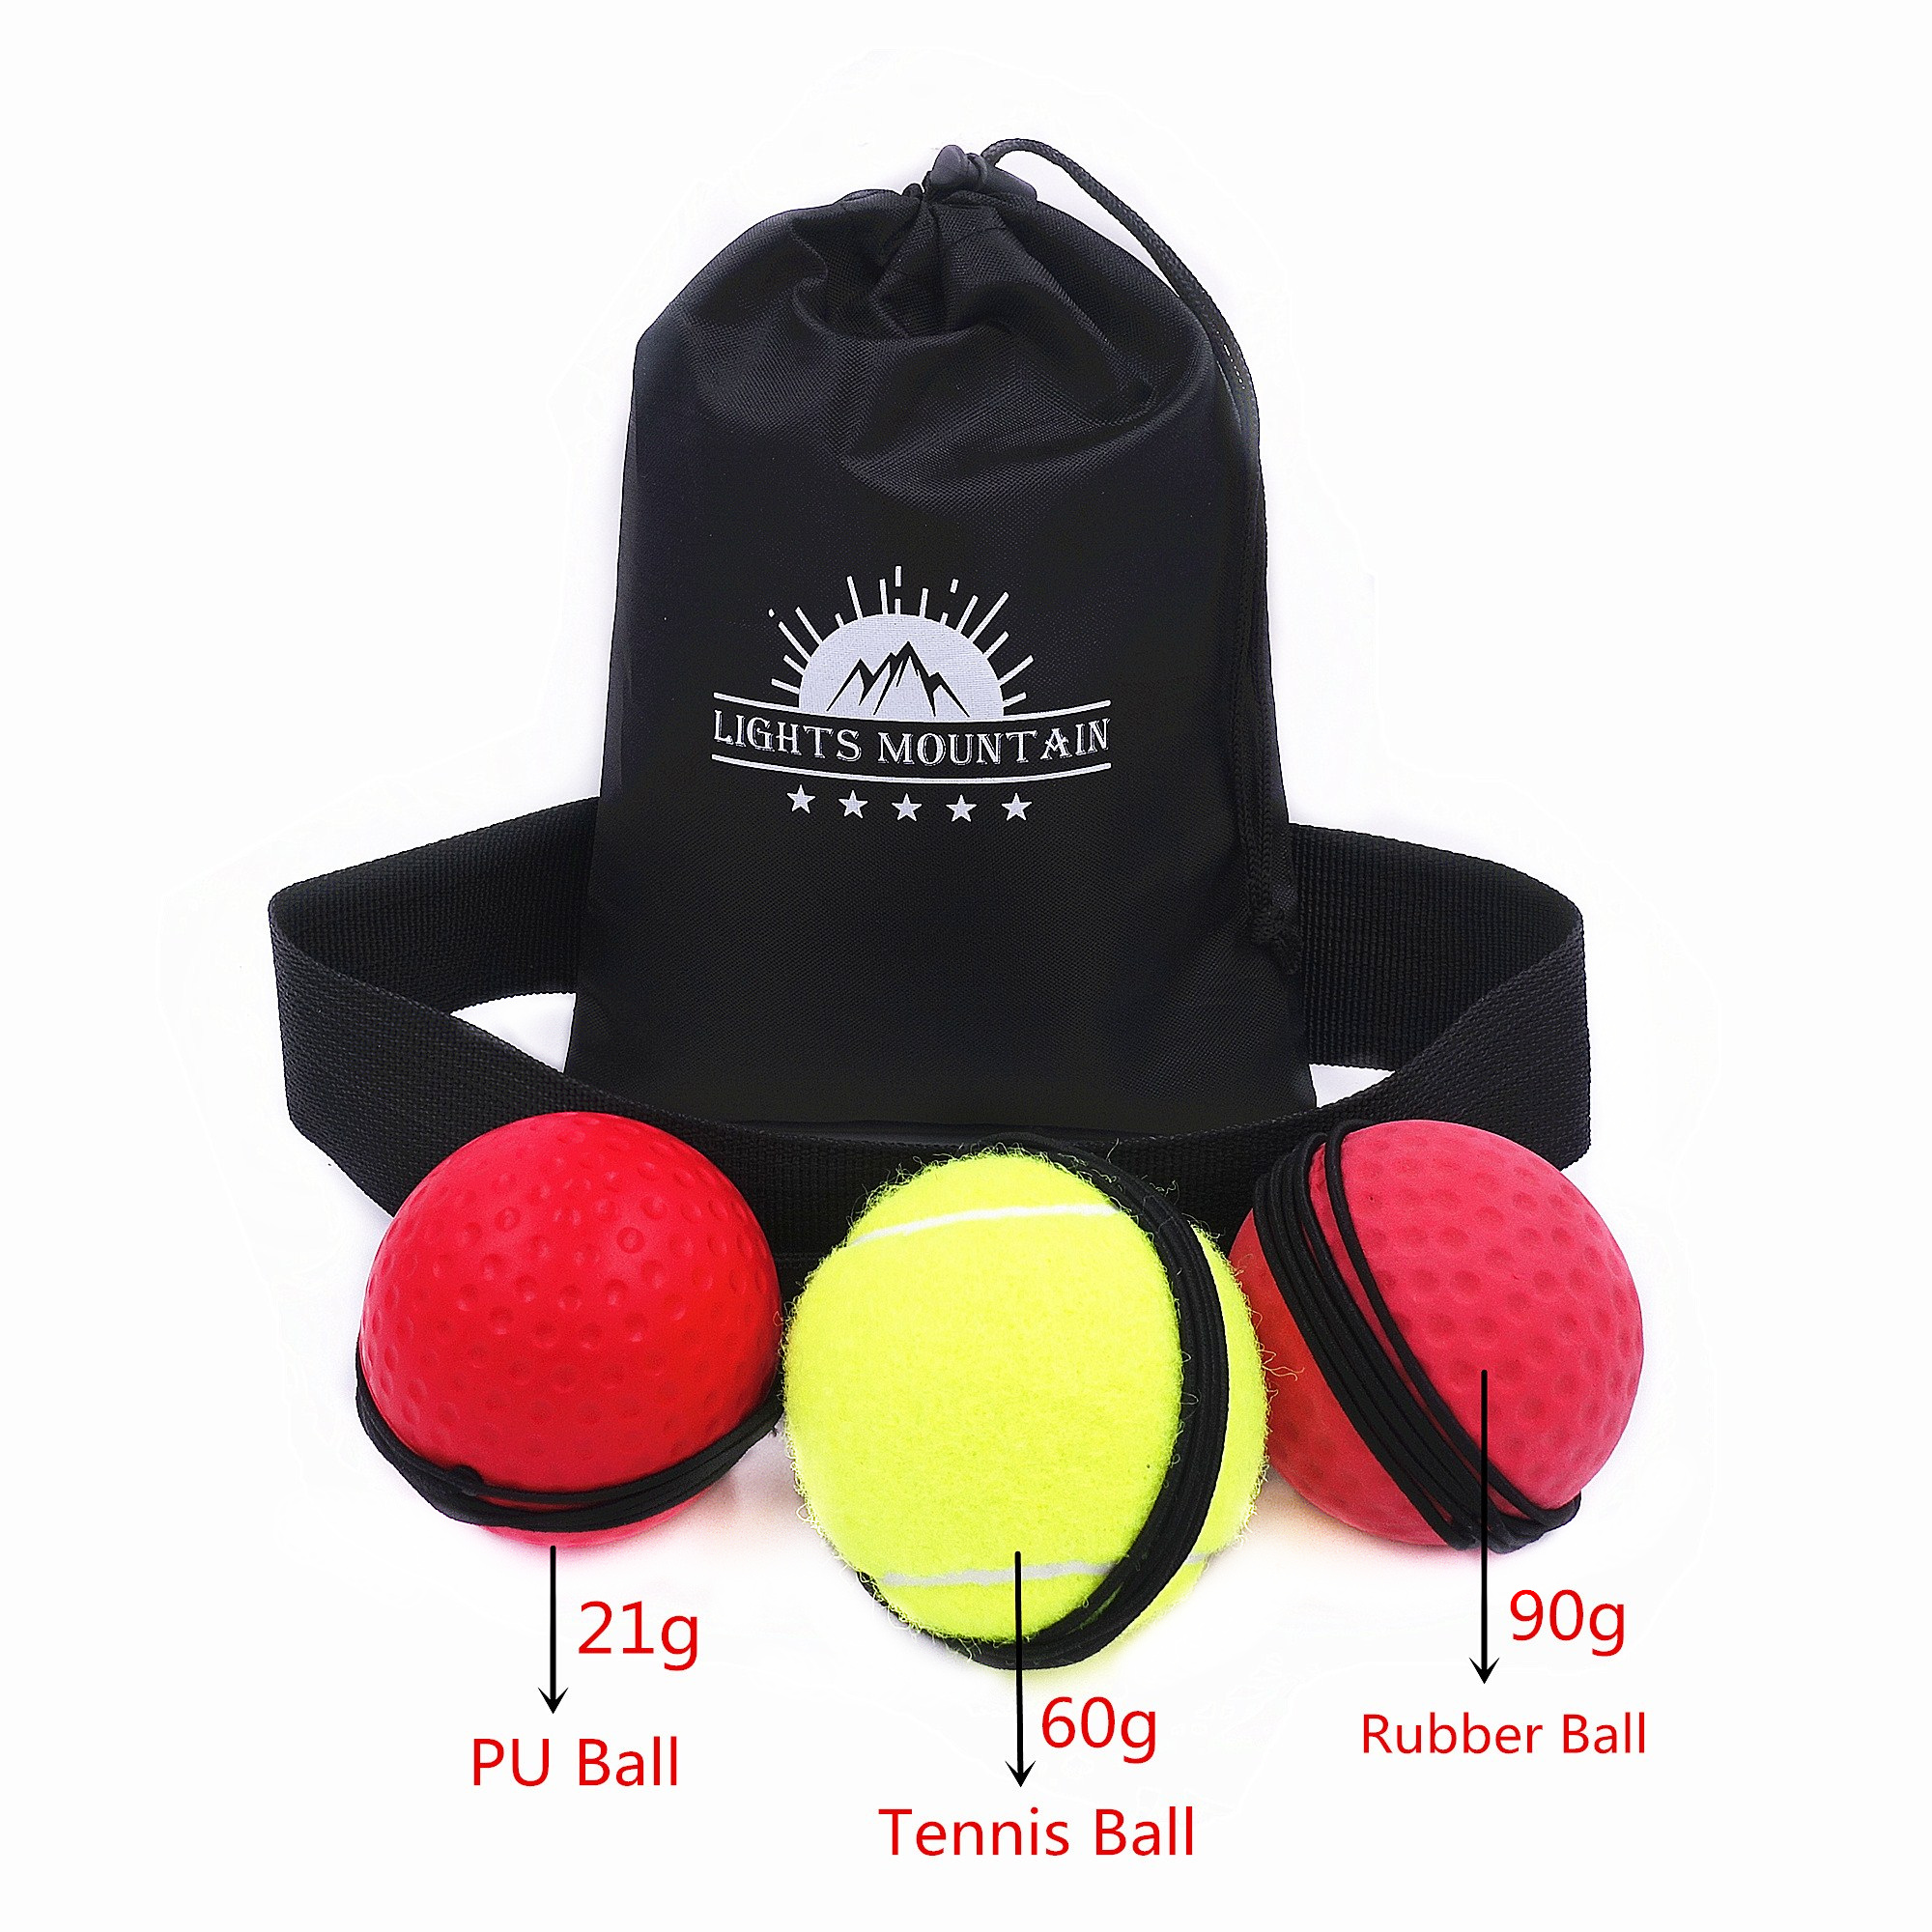 Boxing Quick Puncher Fight Ball Reflex for Training to Improve Reactions Speed